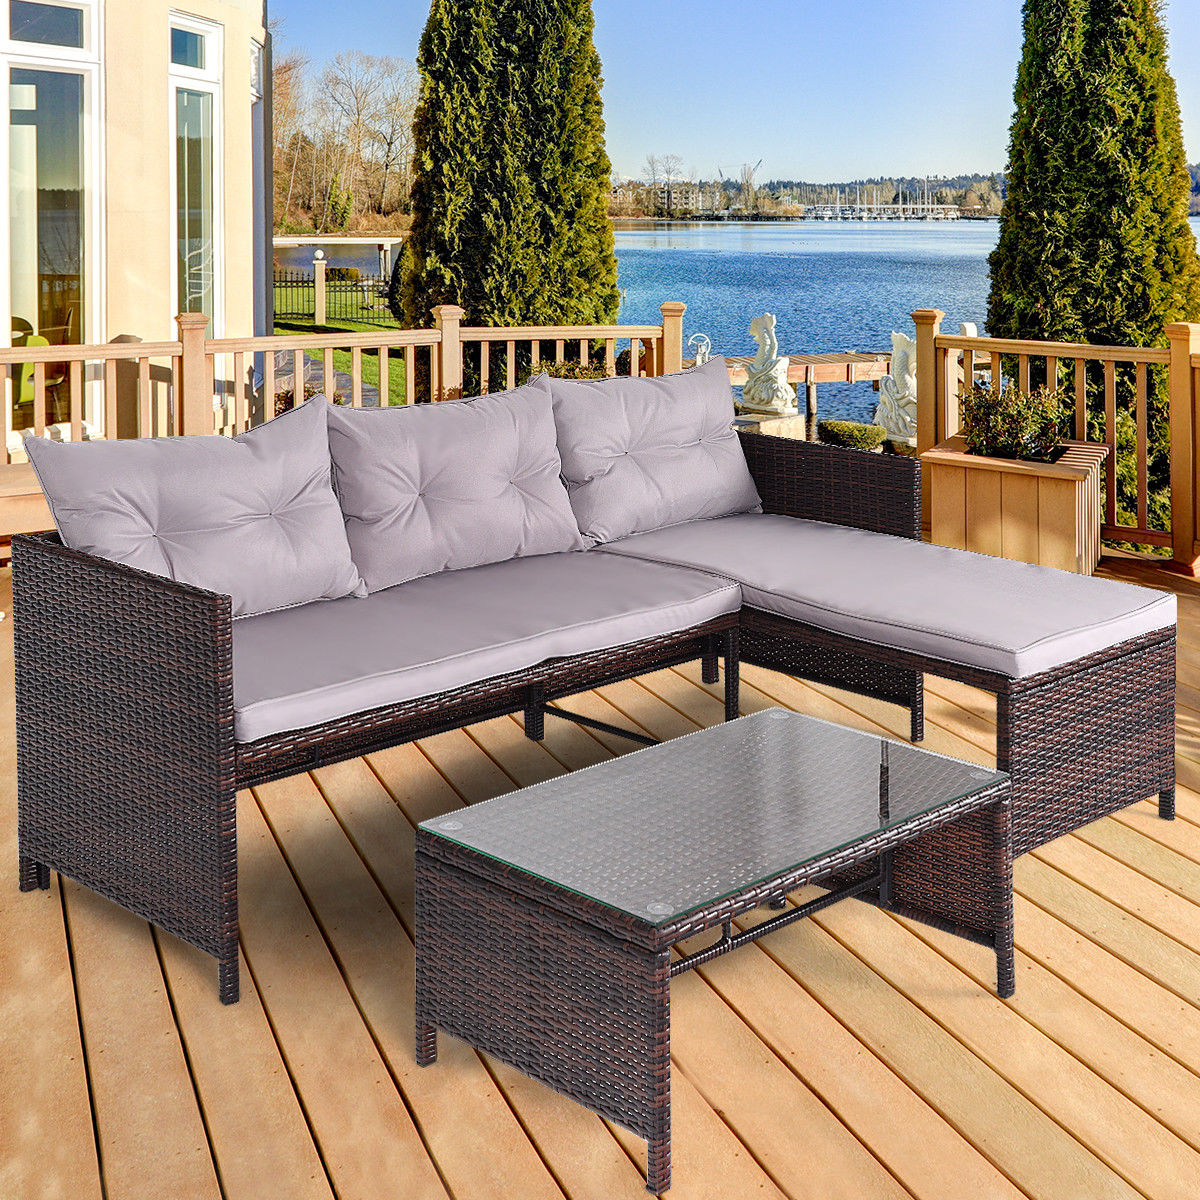 Costway 3 PCS Outdoor Rattan Furniture Sofa Set Lounge Chaise Cushioned Patio Garden New